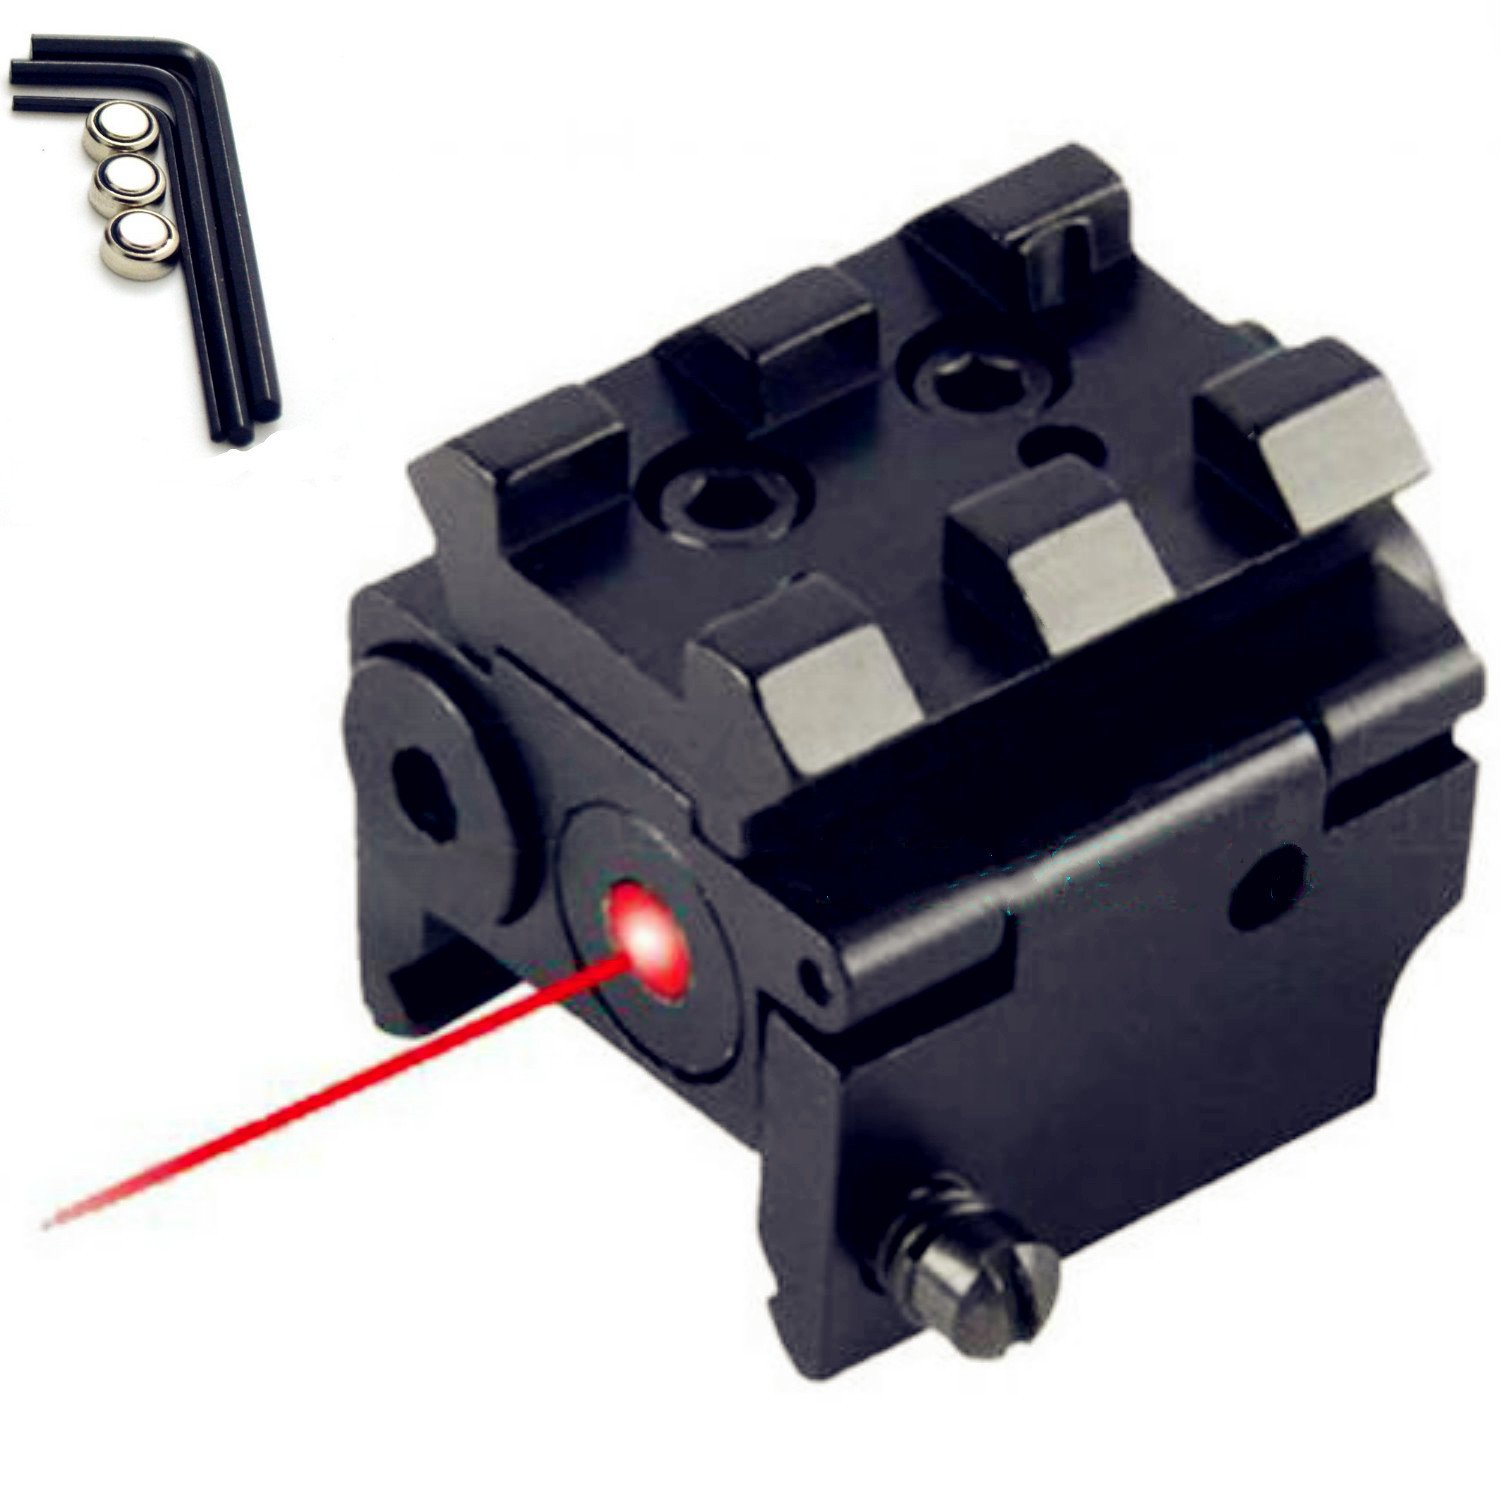 WNOSH Tactical Red Dot Sight Waterproof Shockproof Sight Red Light Mil Dot Sight Scope with Battery Tools